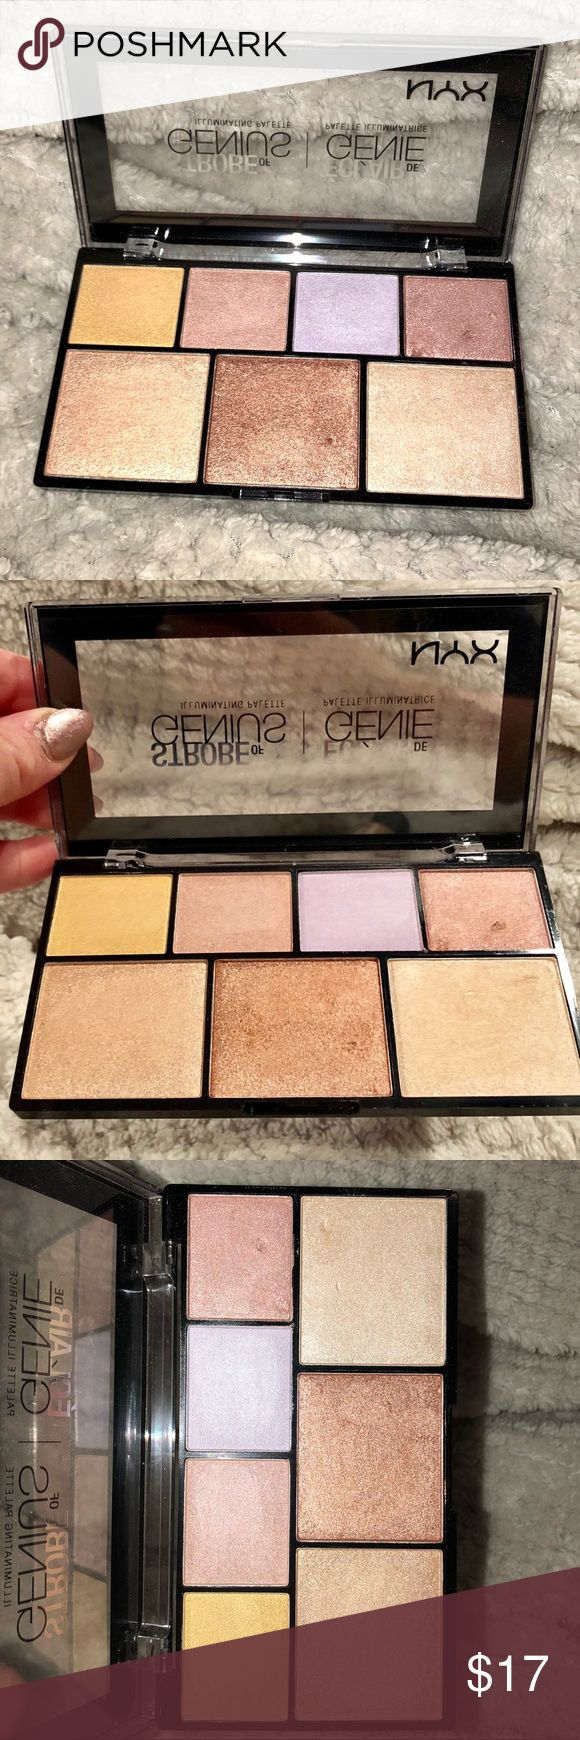 NYX Strobe of Genius Illuminating Palette NYX Professional Makeup Strobe of Genius Illuminating Palette  Only used a couple times for swatching, usage shown in pics! NYX Makeup Luminizer